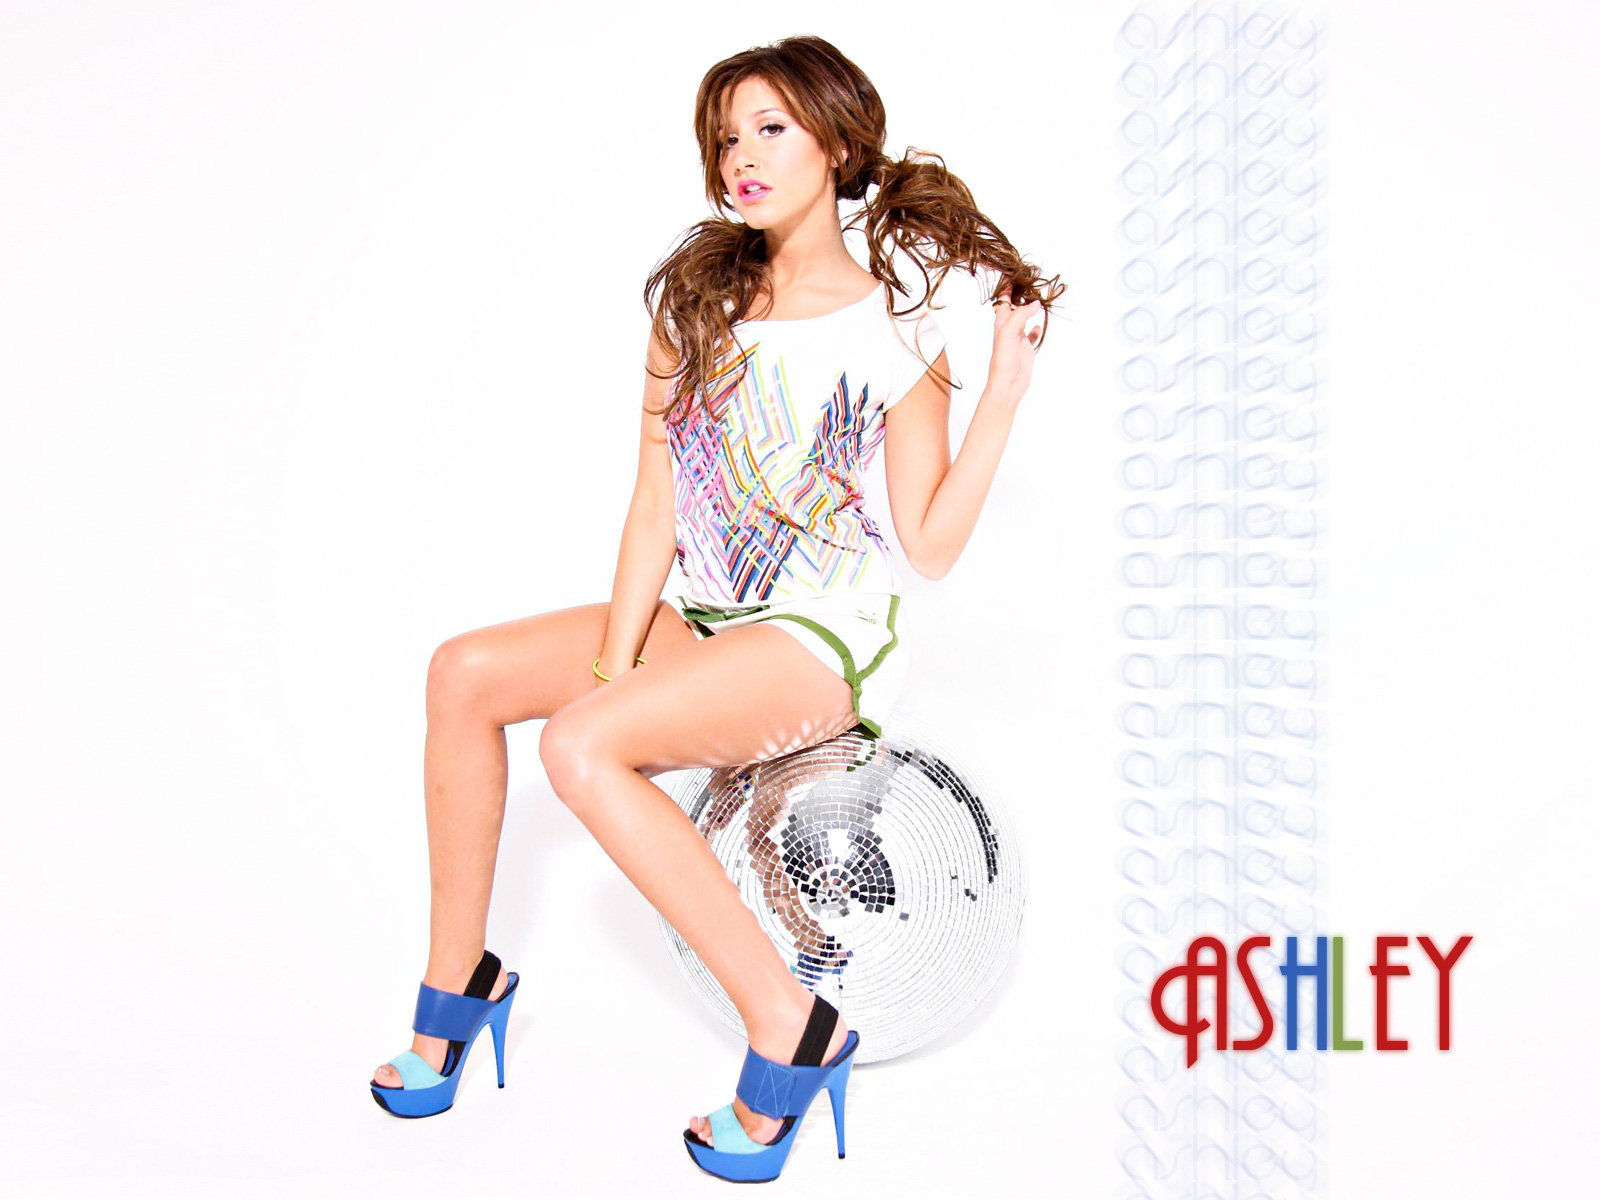 Ashley Tisdale 2010 New wallpaper download